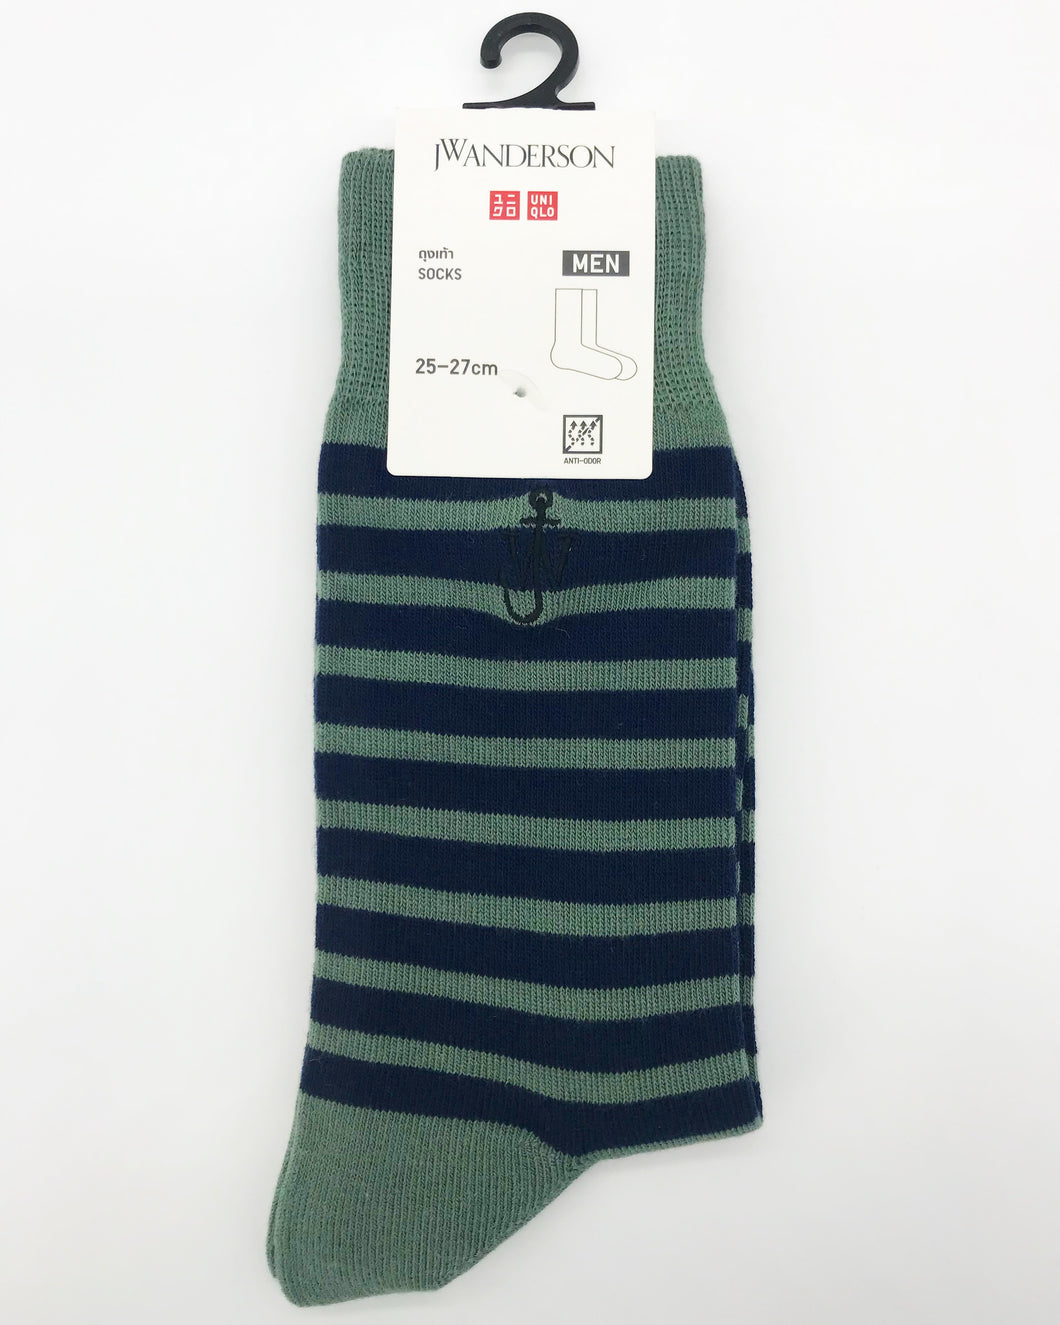 JW Anderson for Uniqlo Striped Socks